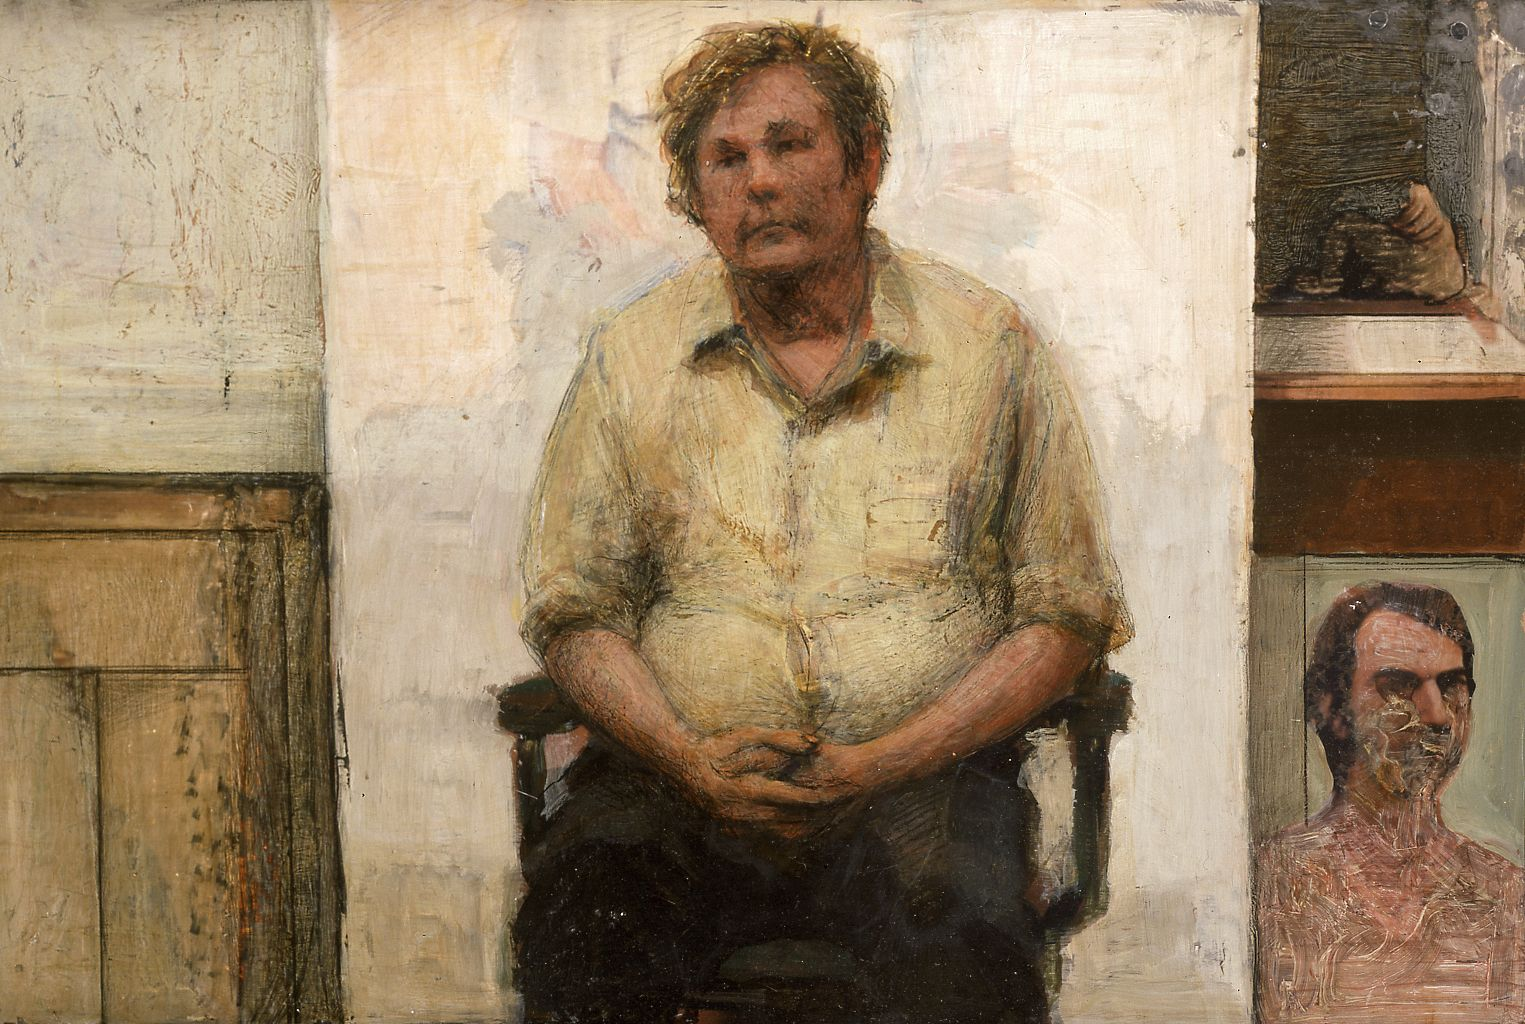 gregory gillespie,  Bill (in studio), 1984, oil on panel, 13 x 18 1/2 inches